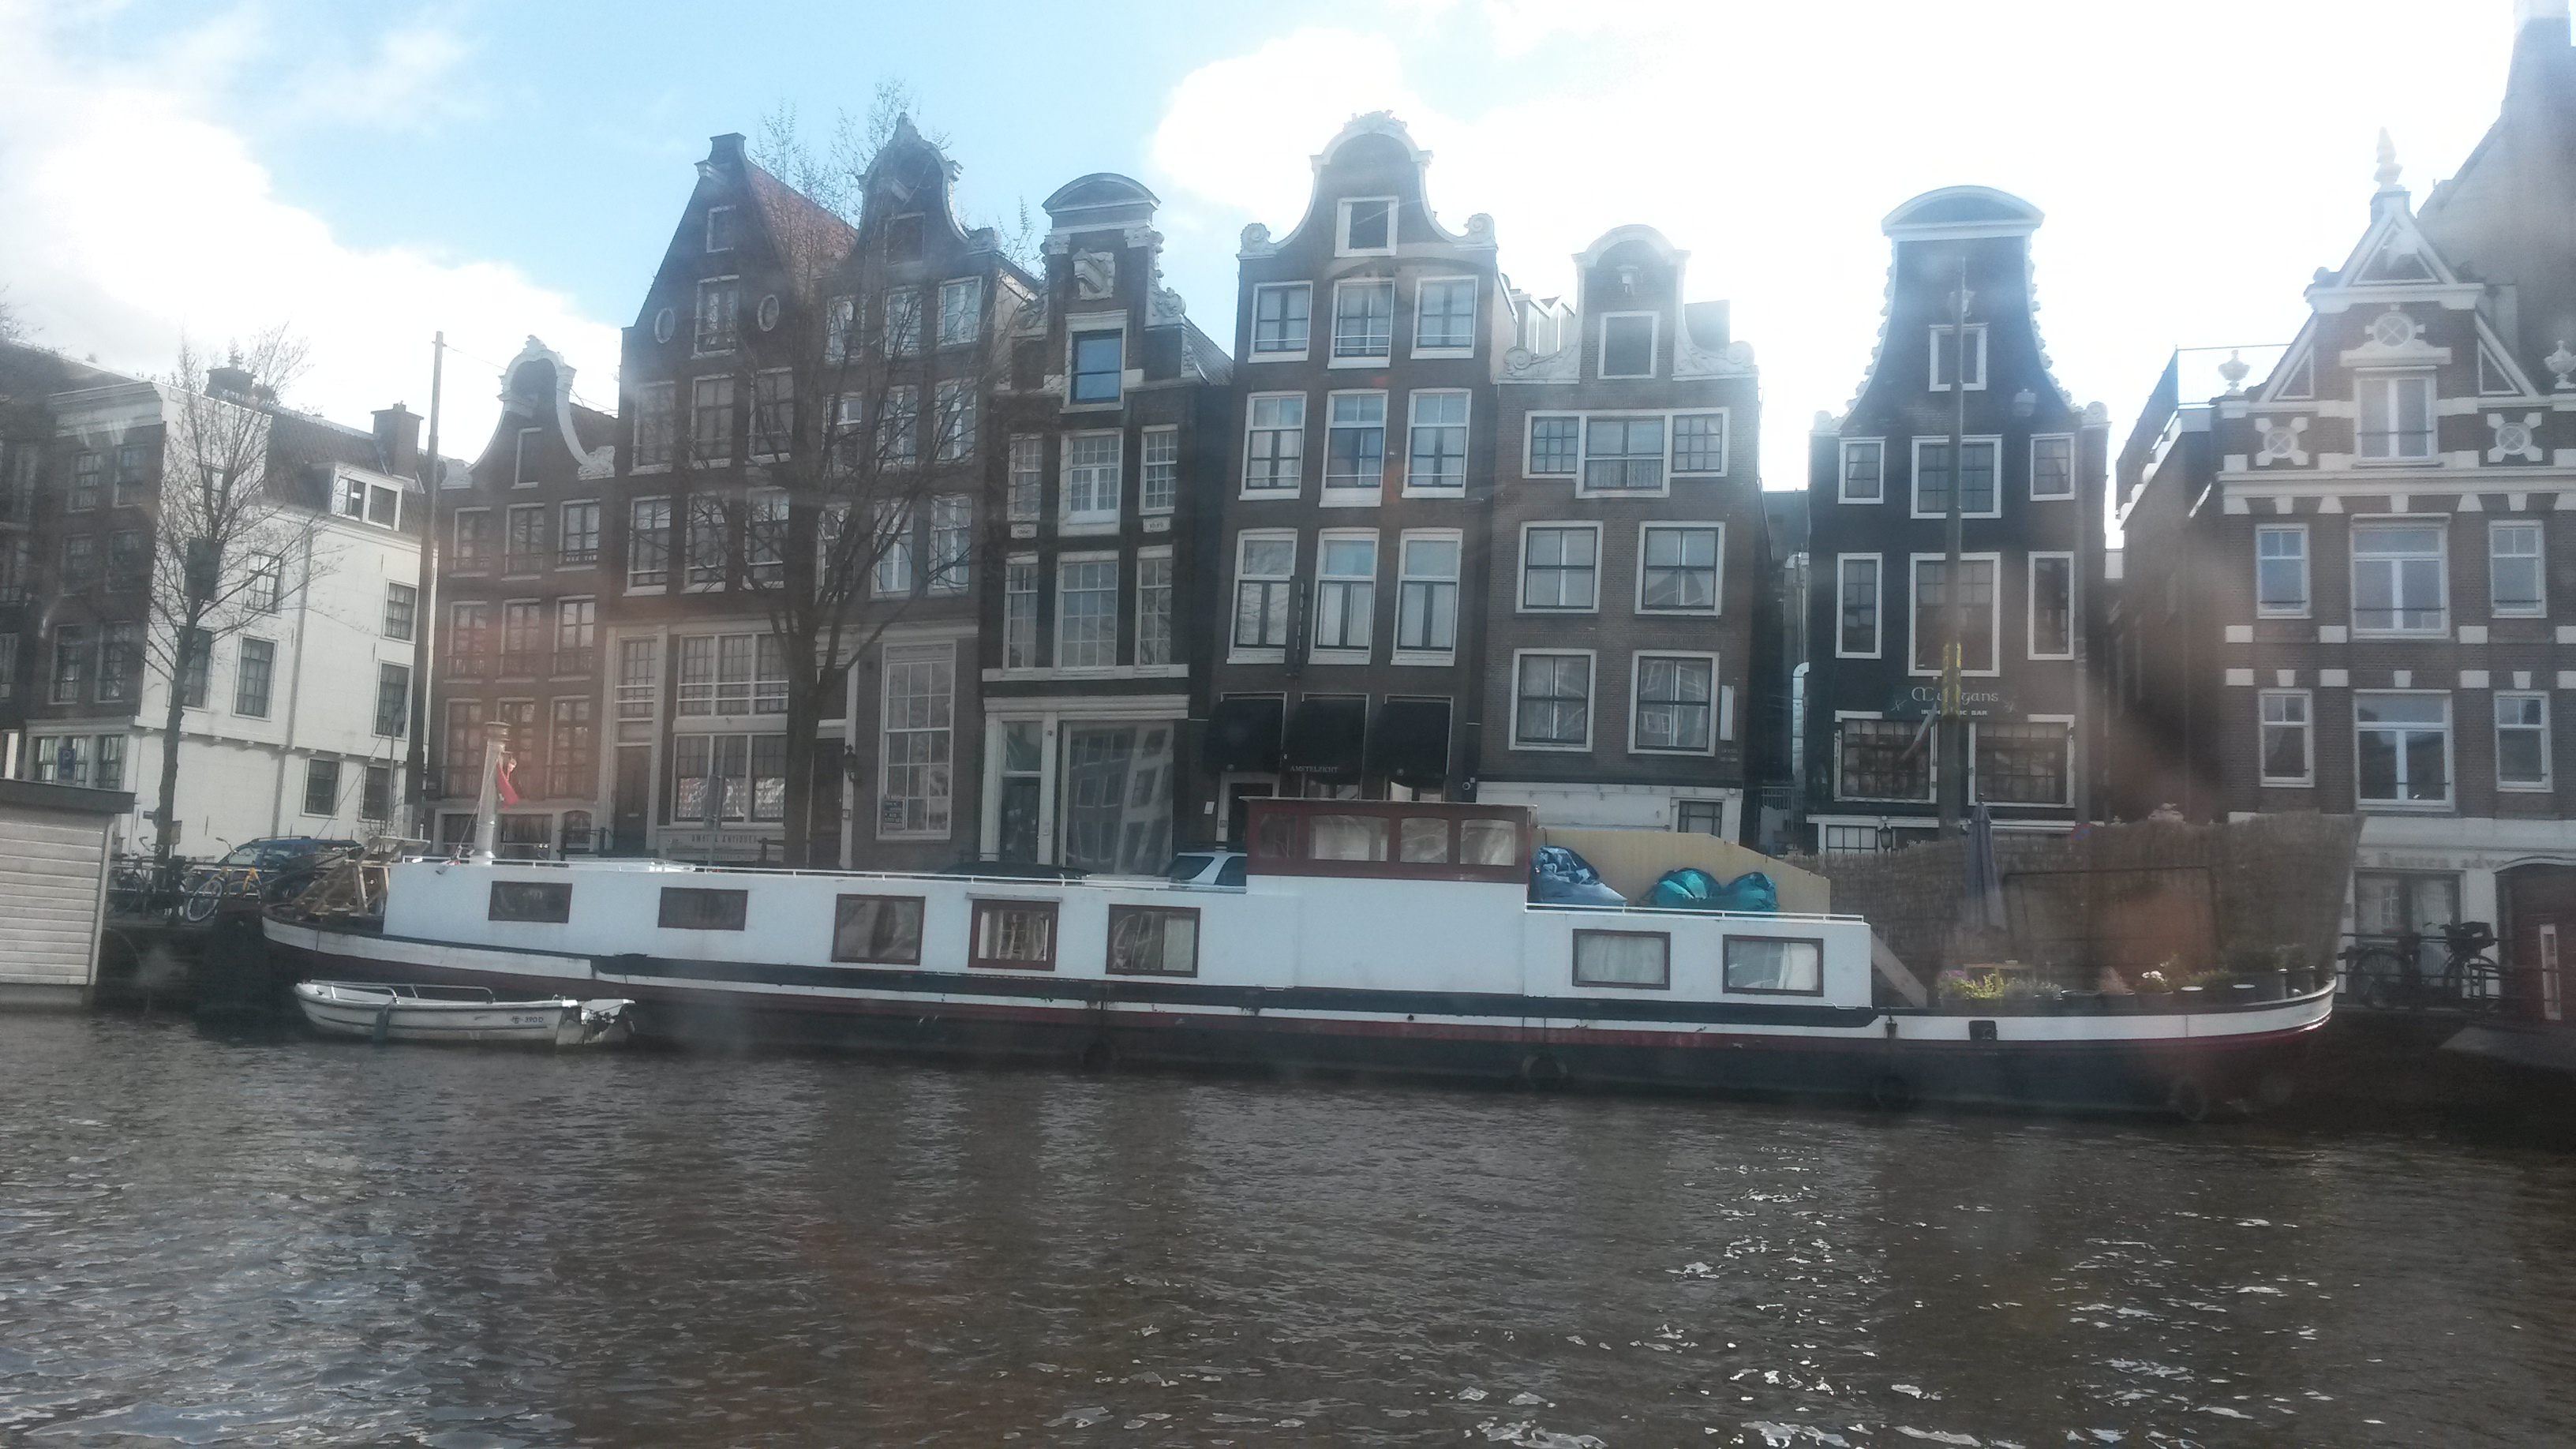 Tilting houses on the canals  because of decaying stilts - Eeek!